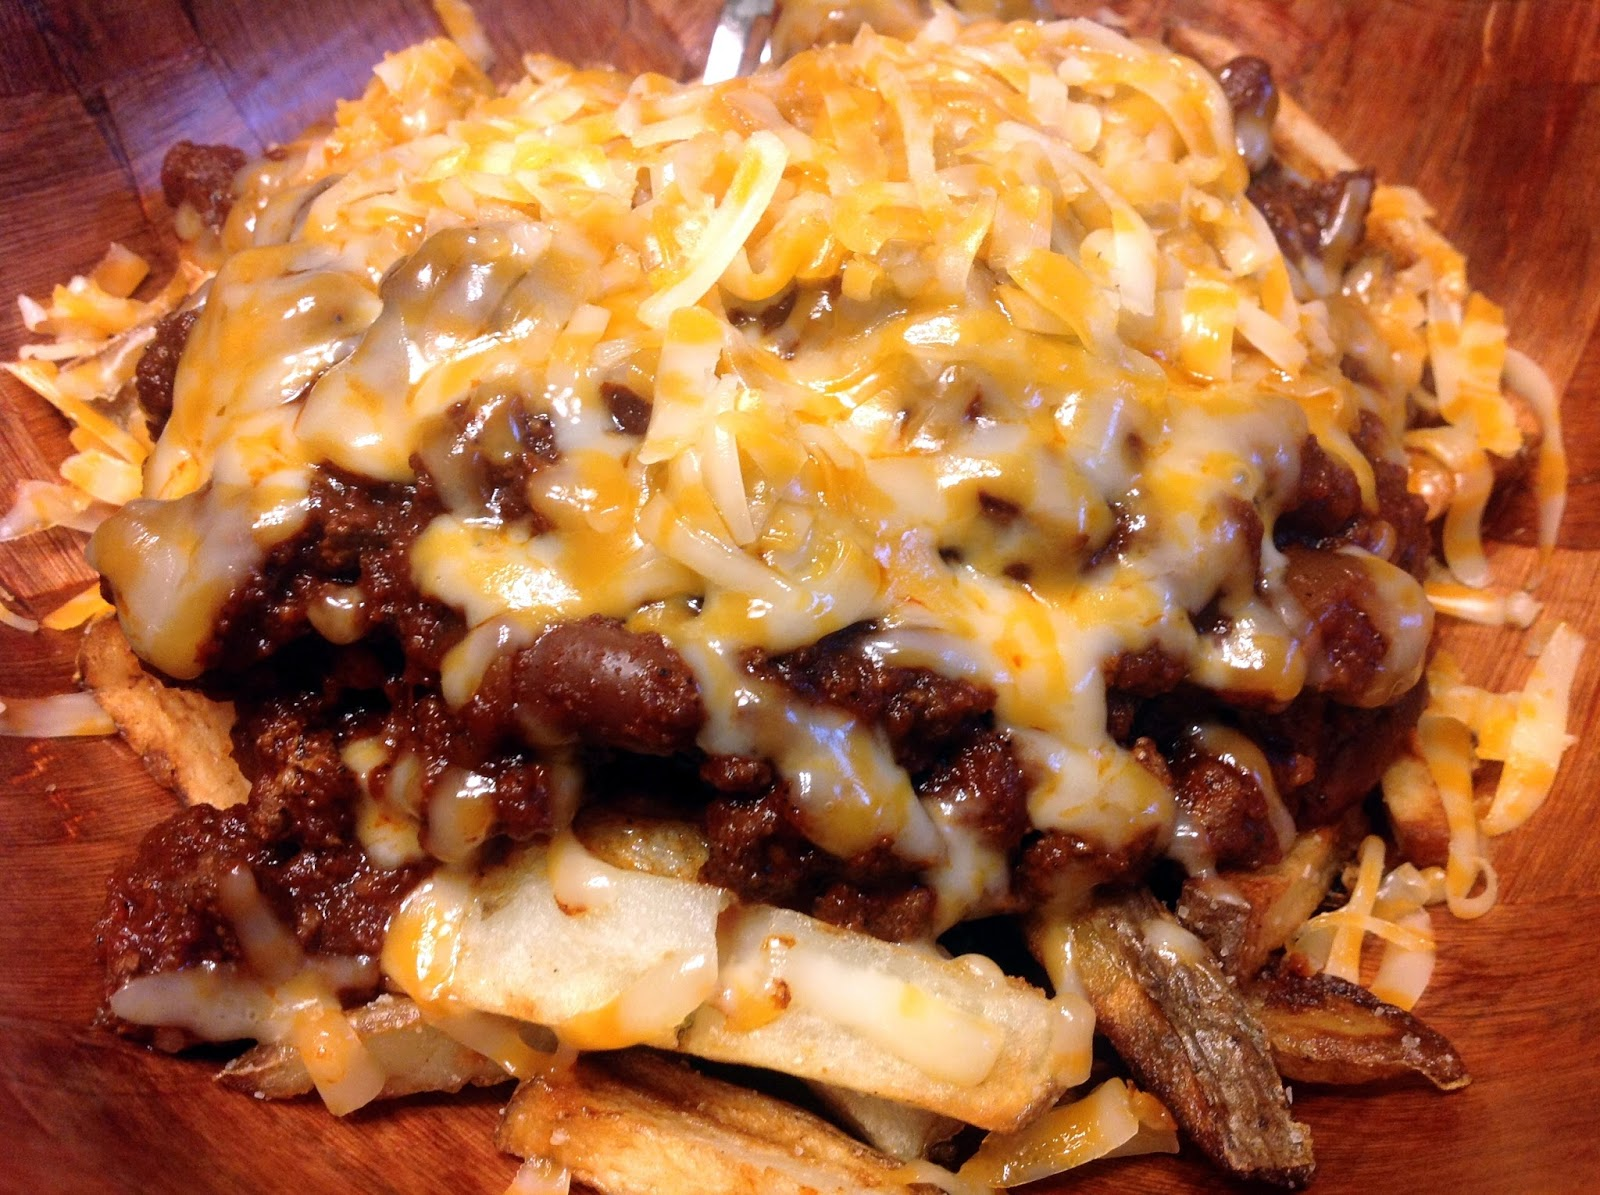 chili cheese fries recipe dishmaps